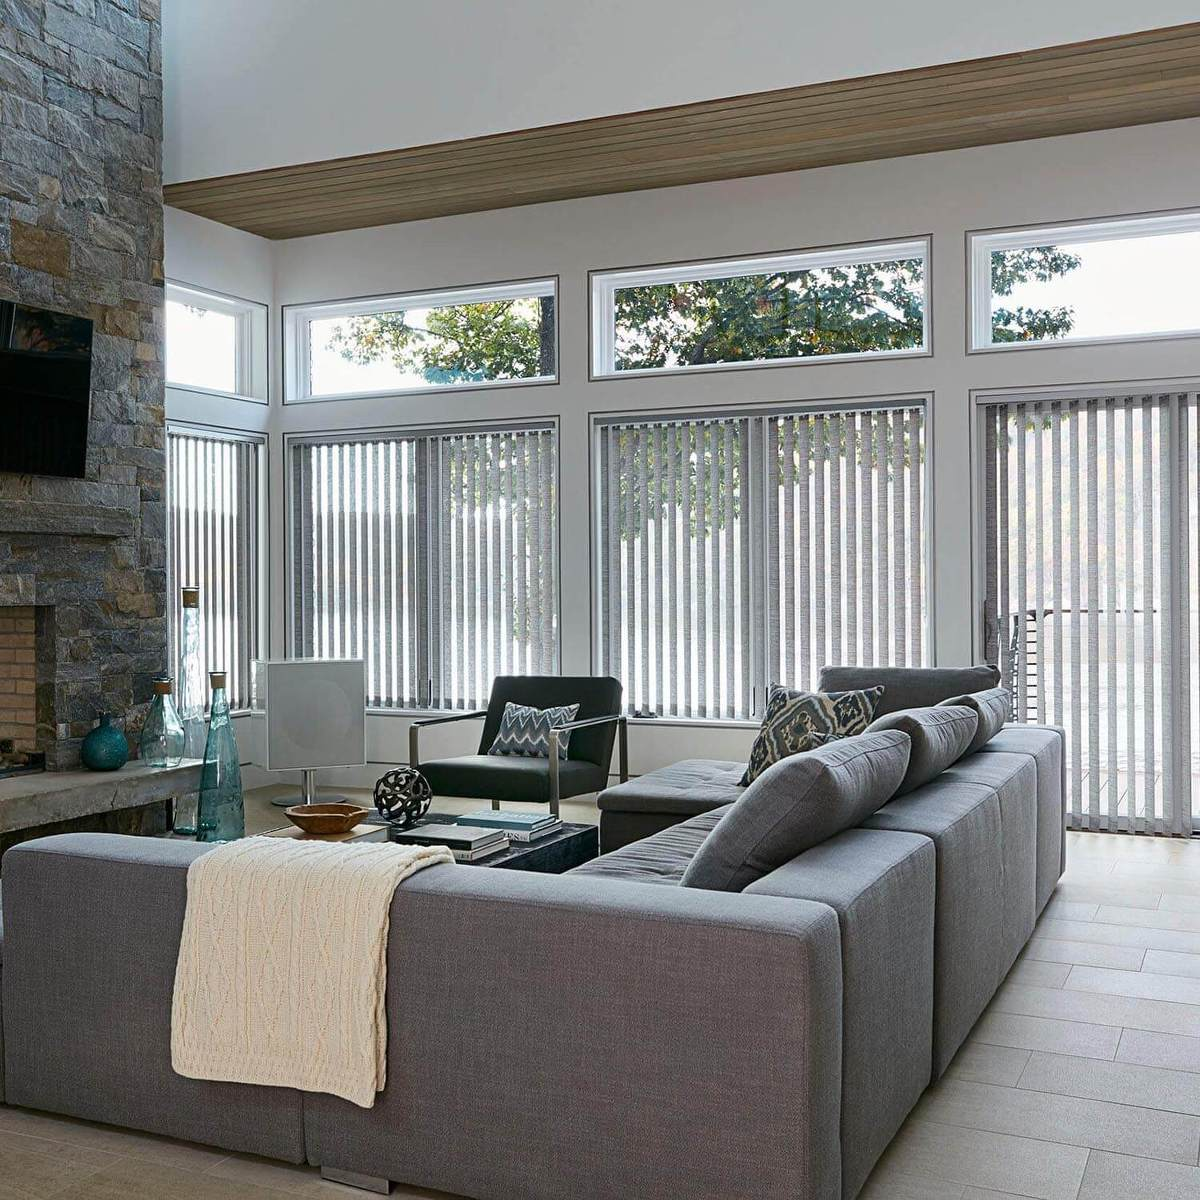 Cordless fabric vertical blinds displayed in this amazing living room space.